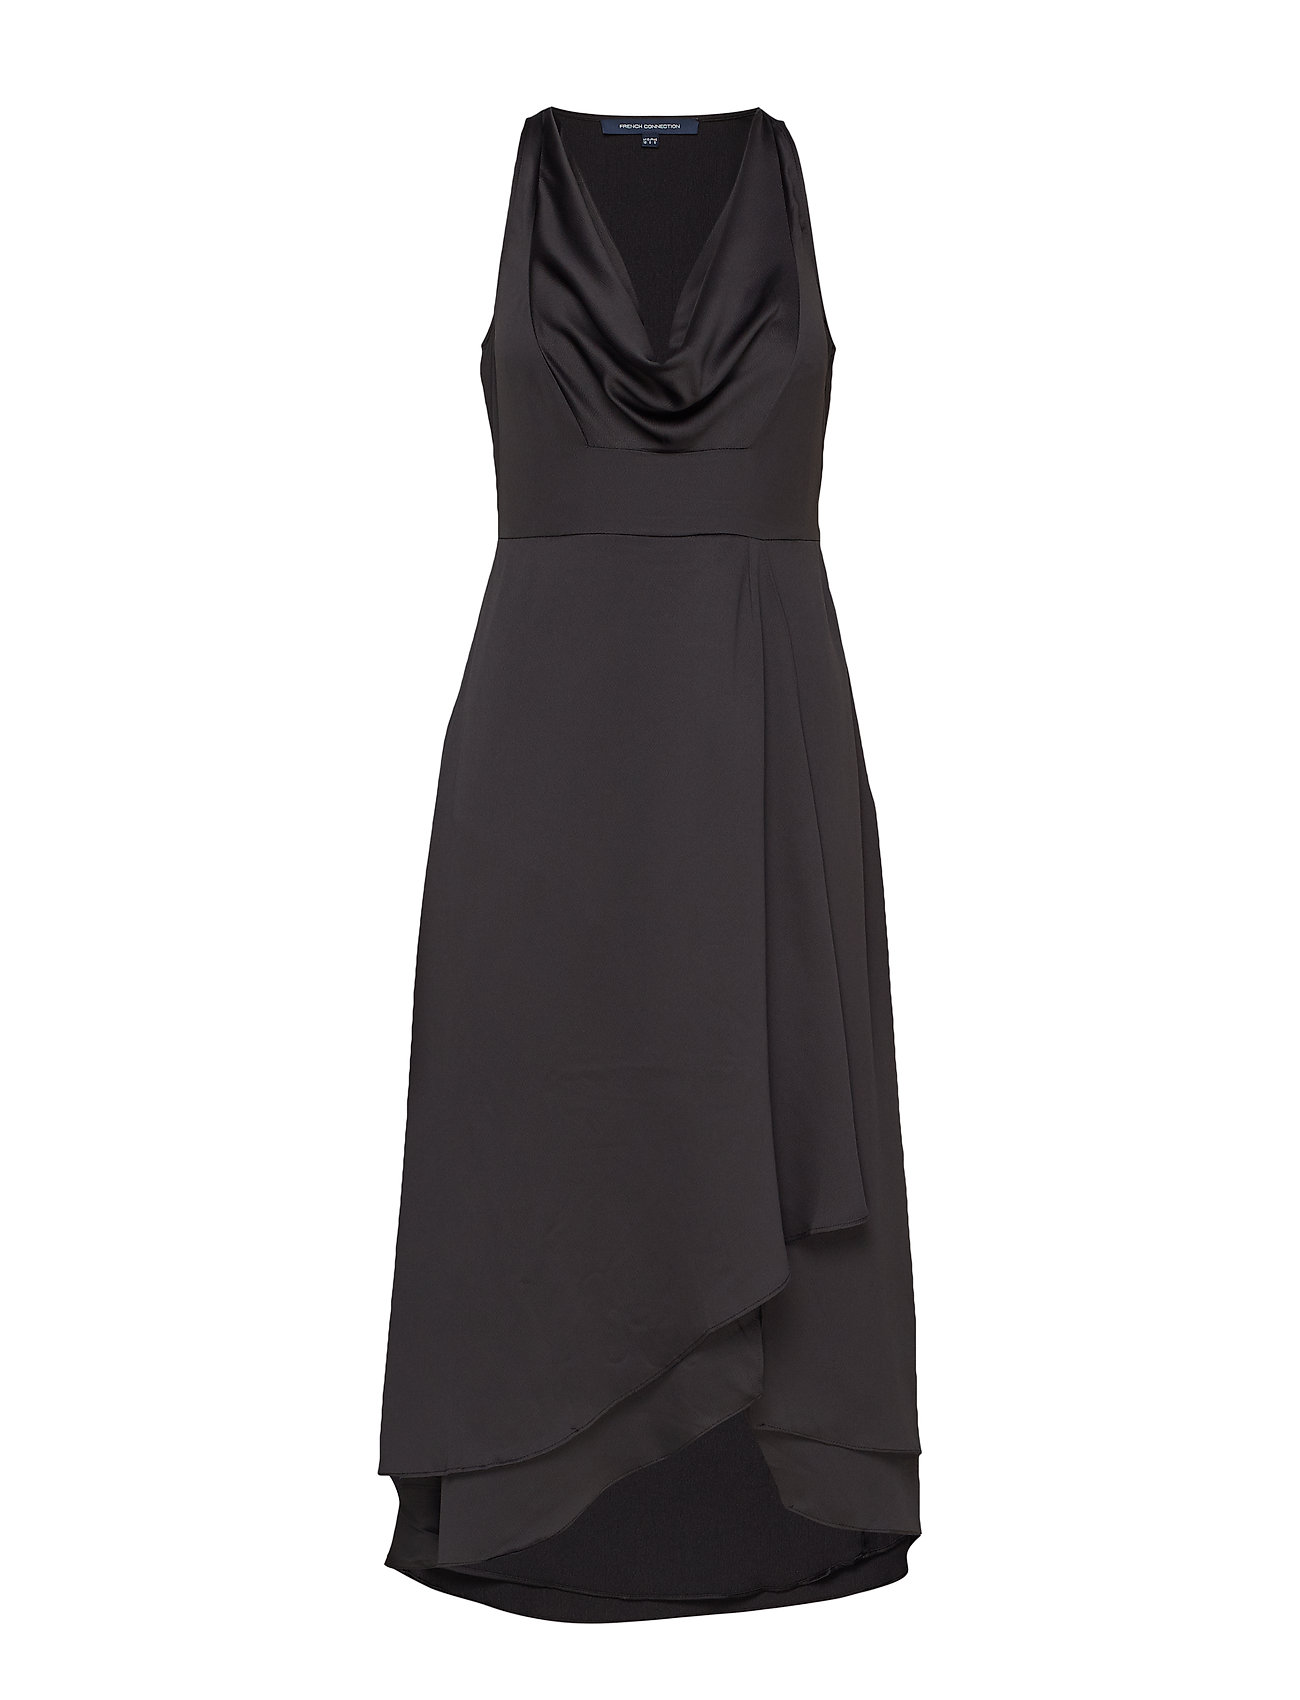 French Connection ALESSIA SATIN COWL NECK DRESS - BLACK